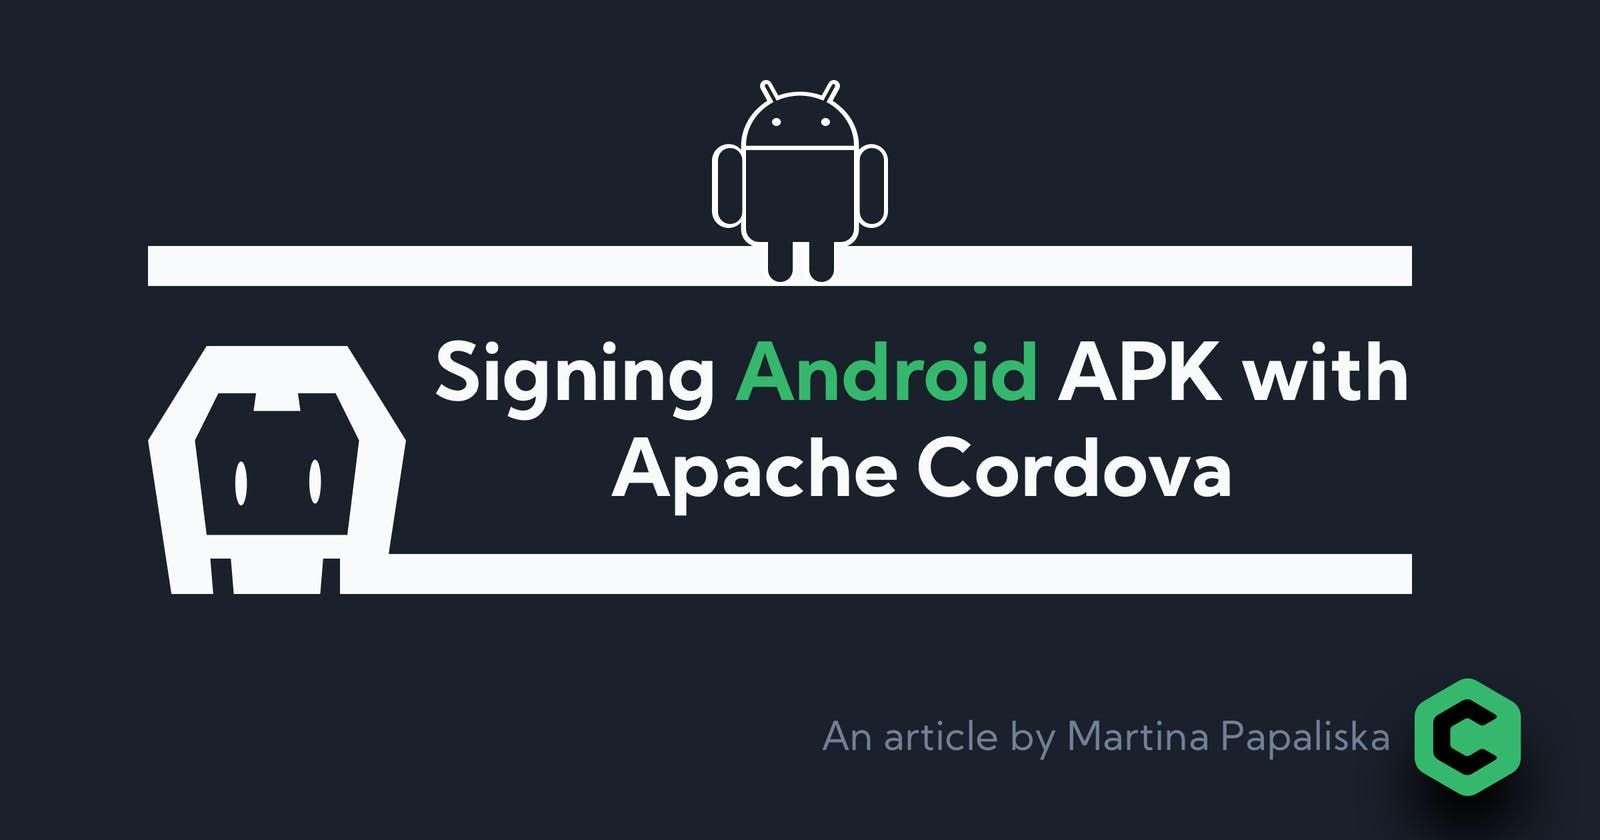 /how-to-sign-android-apks-with-apache-cordova-a-brief-guide-uj13339k feature image